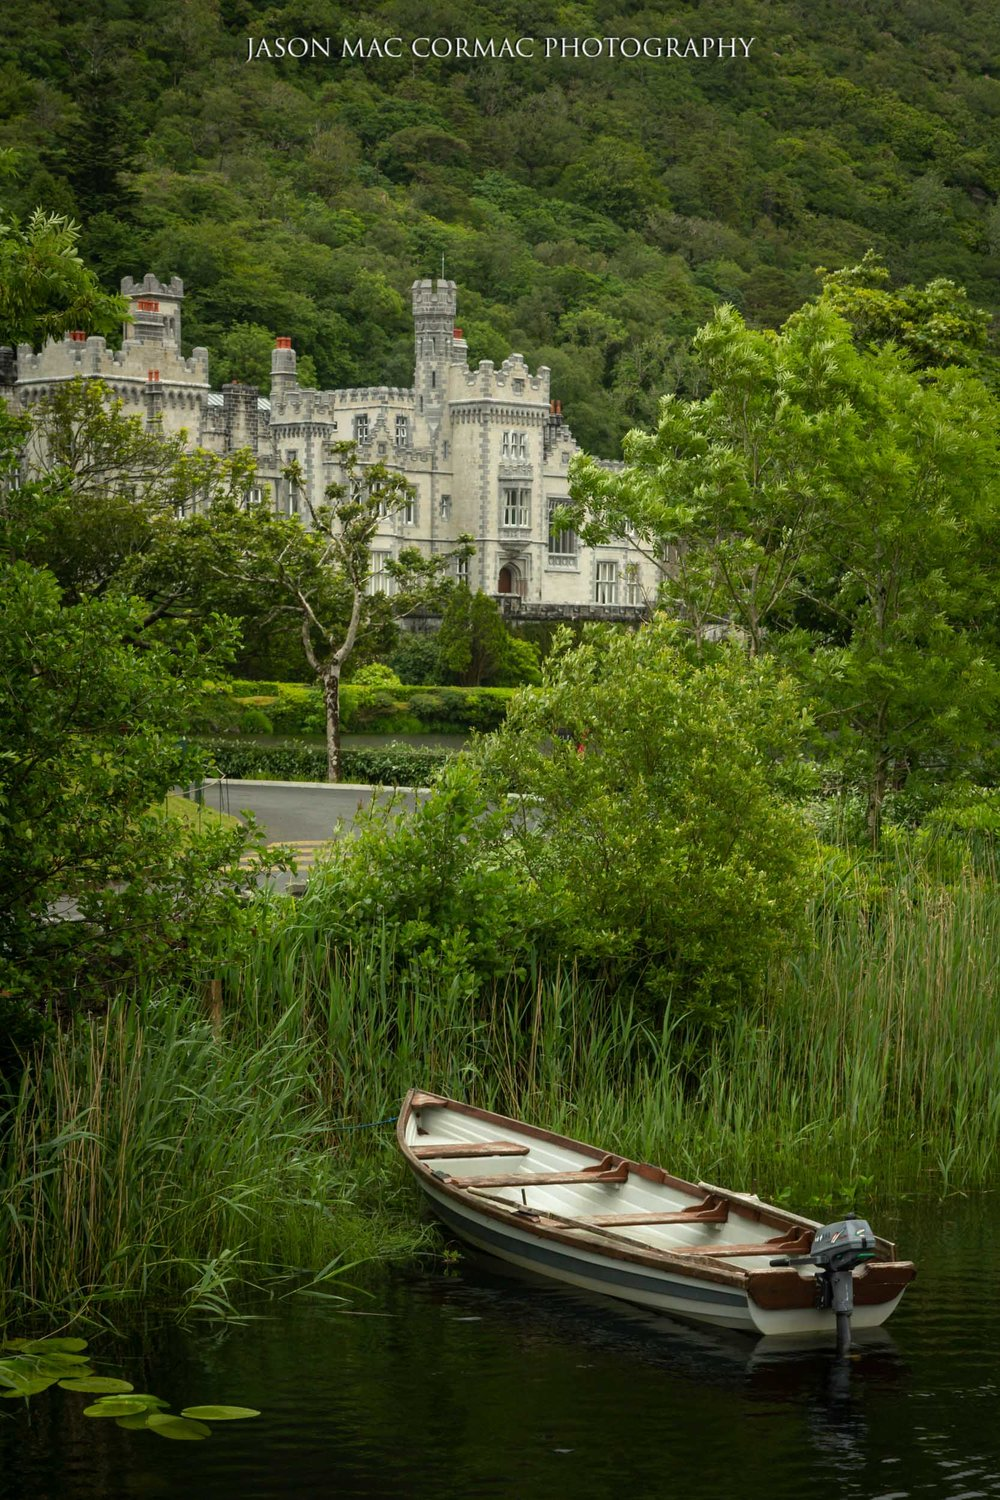 Kylemore Abbey  Image Details: F8, ISO 250, 1/50.